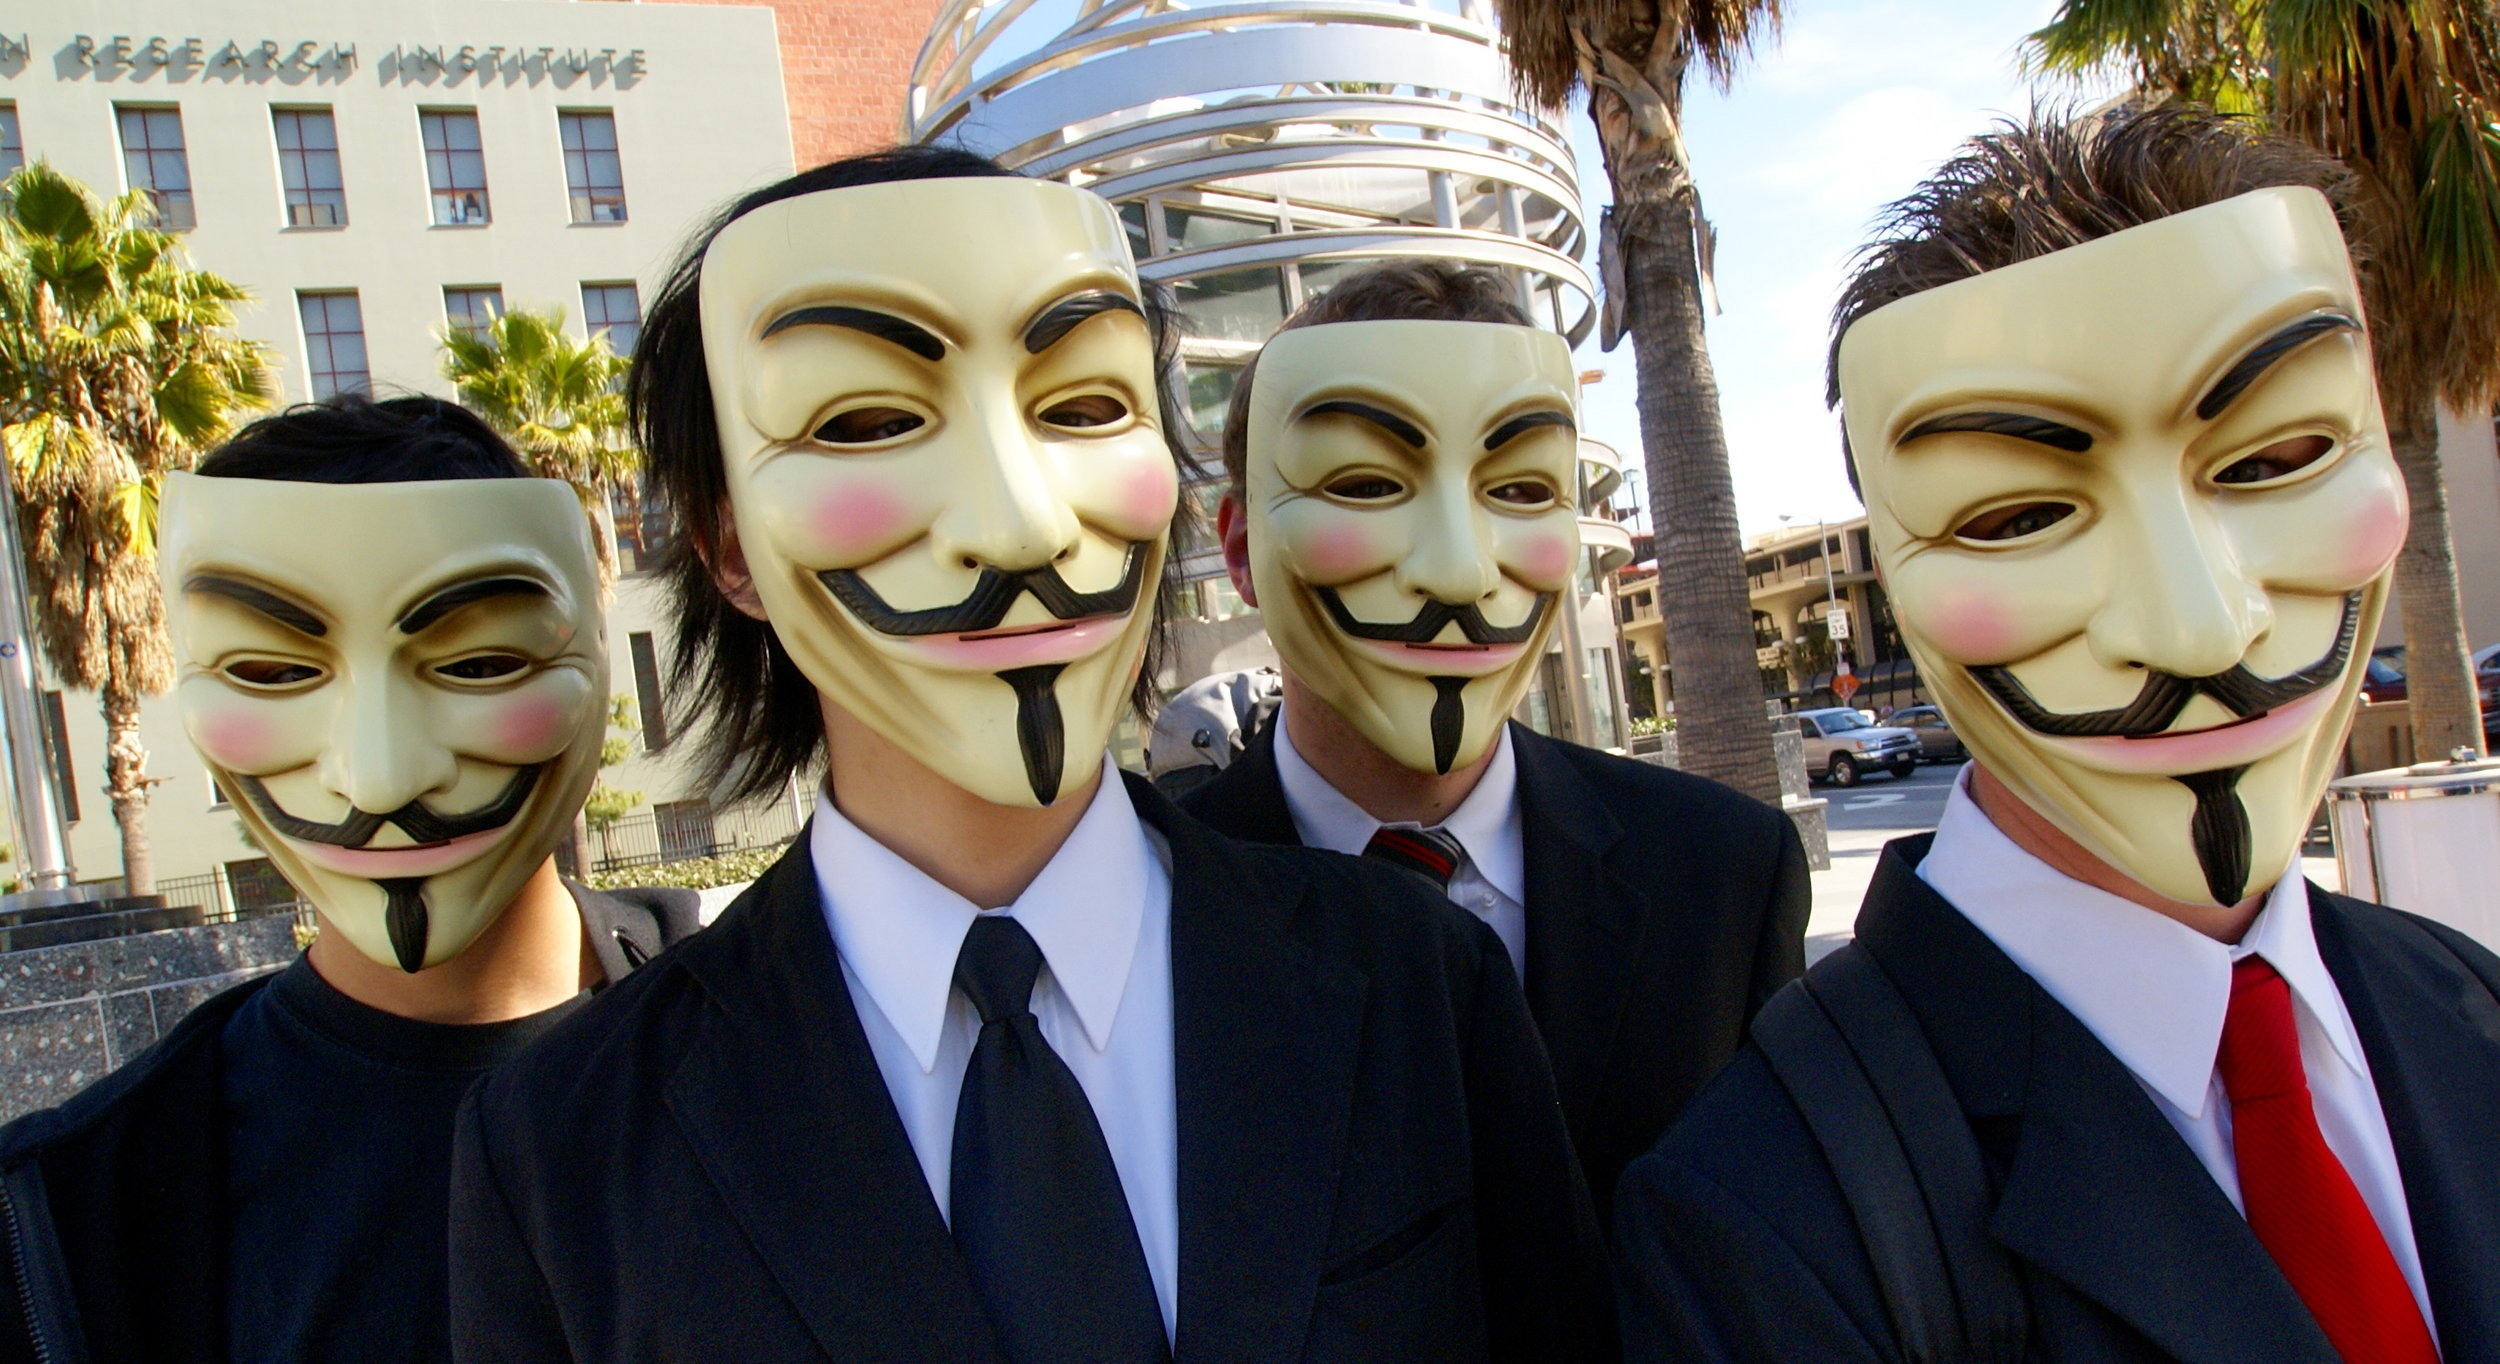 The masked faces of members of Anonymous, the hacking group, outside the Church of Scientology in Los Angeles